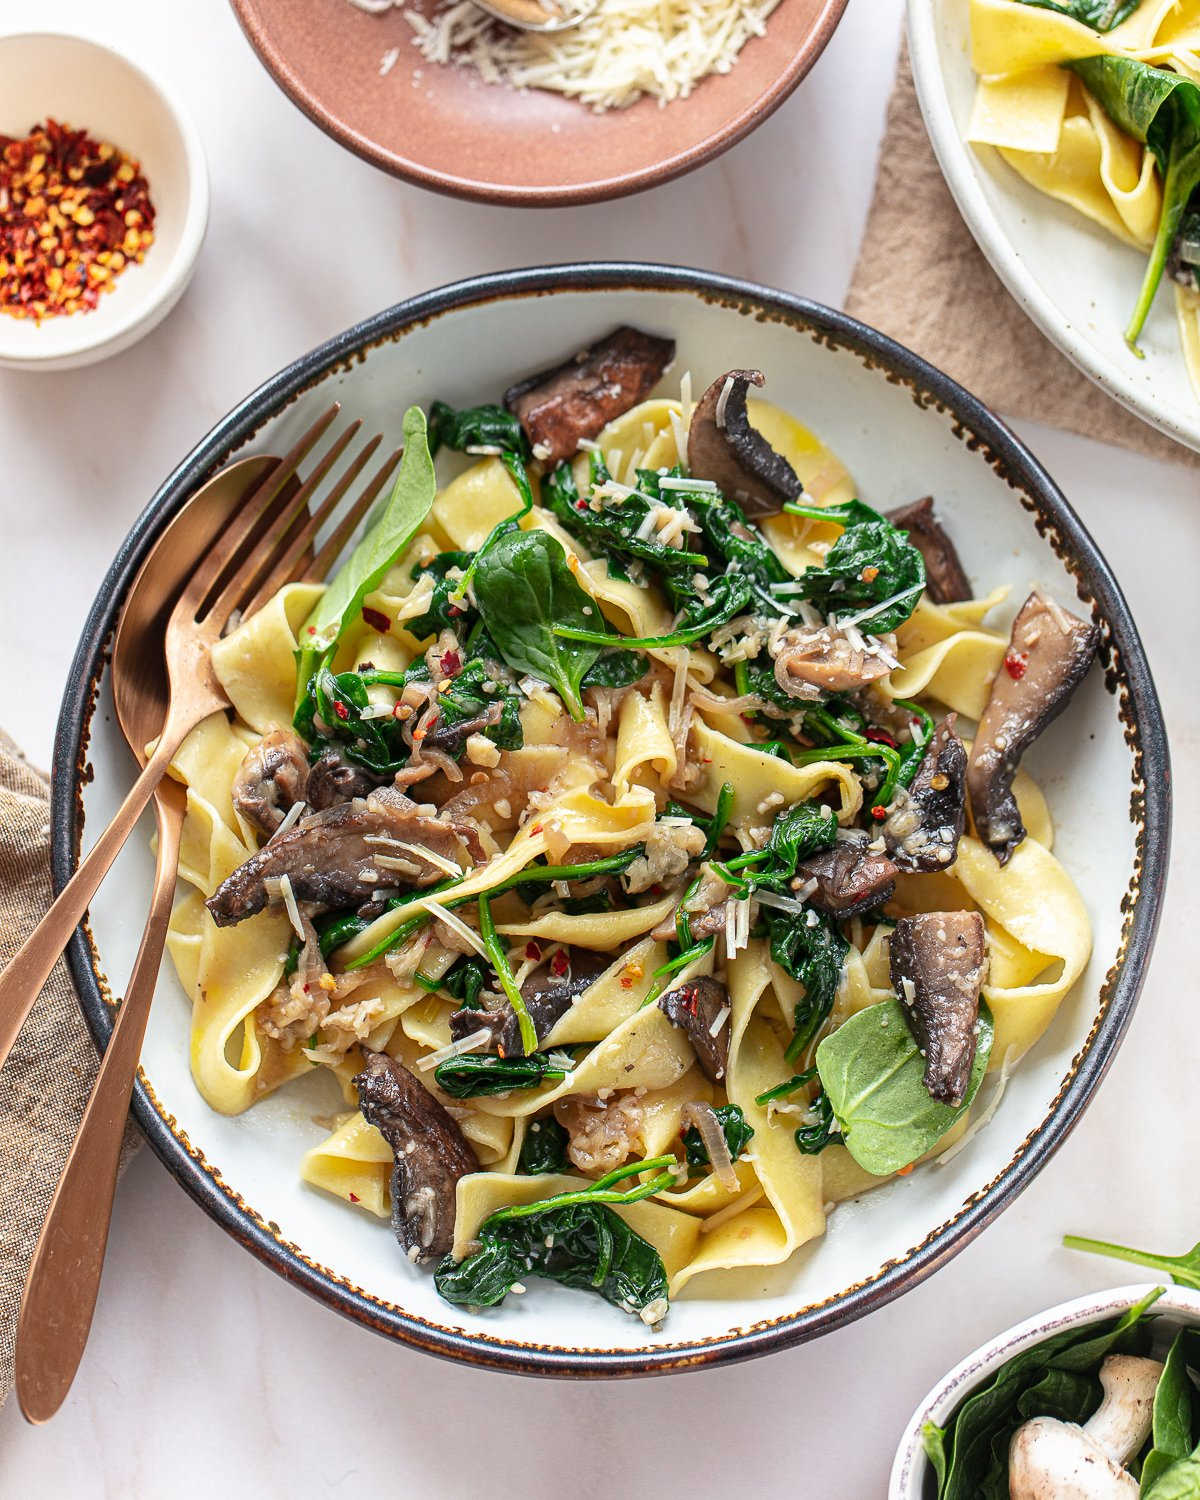 A round bowl with a serving of mushroom spinach pasta, with a fork and spoon on the side of the bowl.